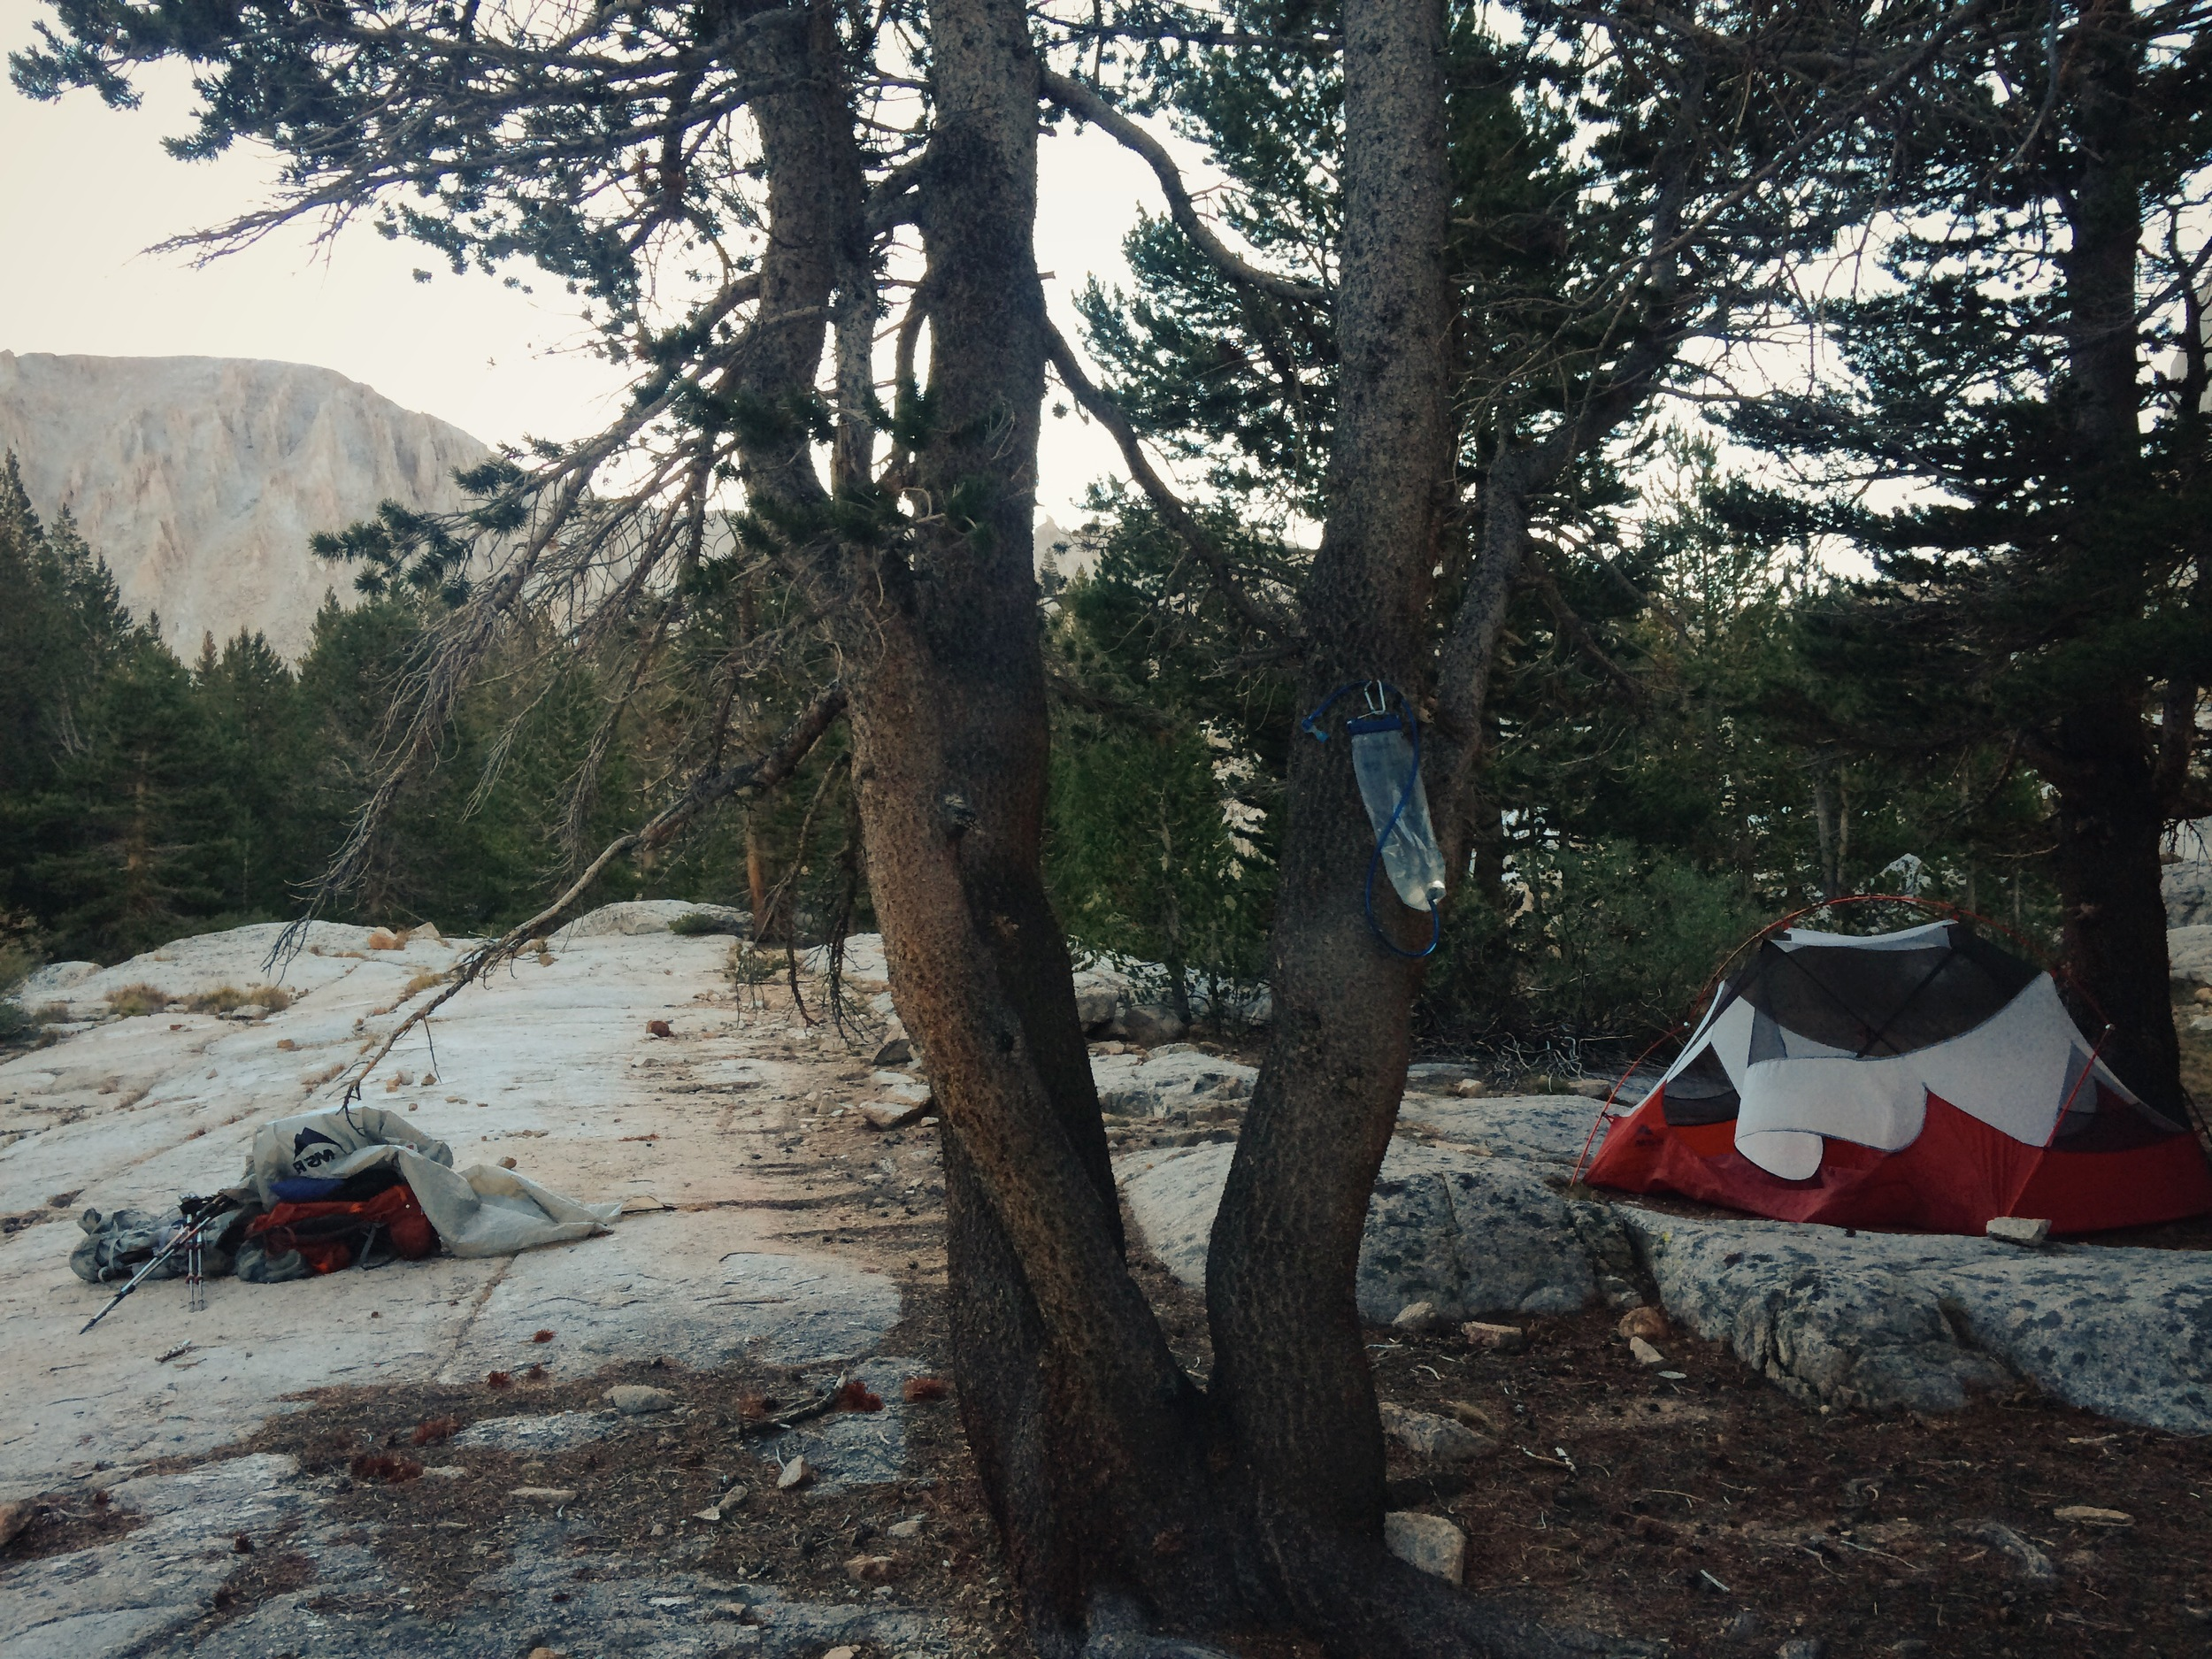 Day 17: camped at Timberline Lake.